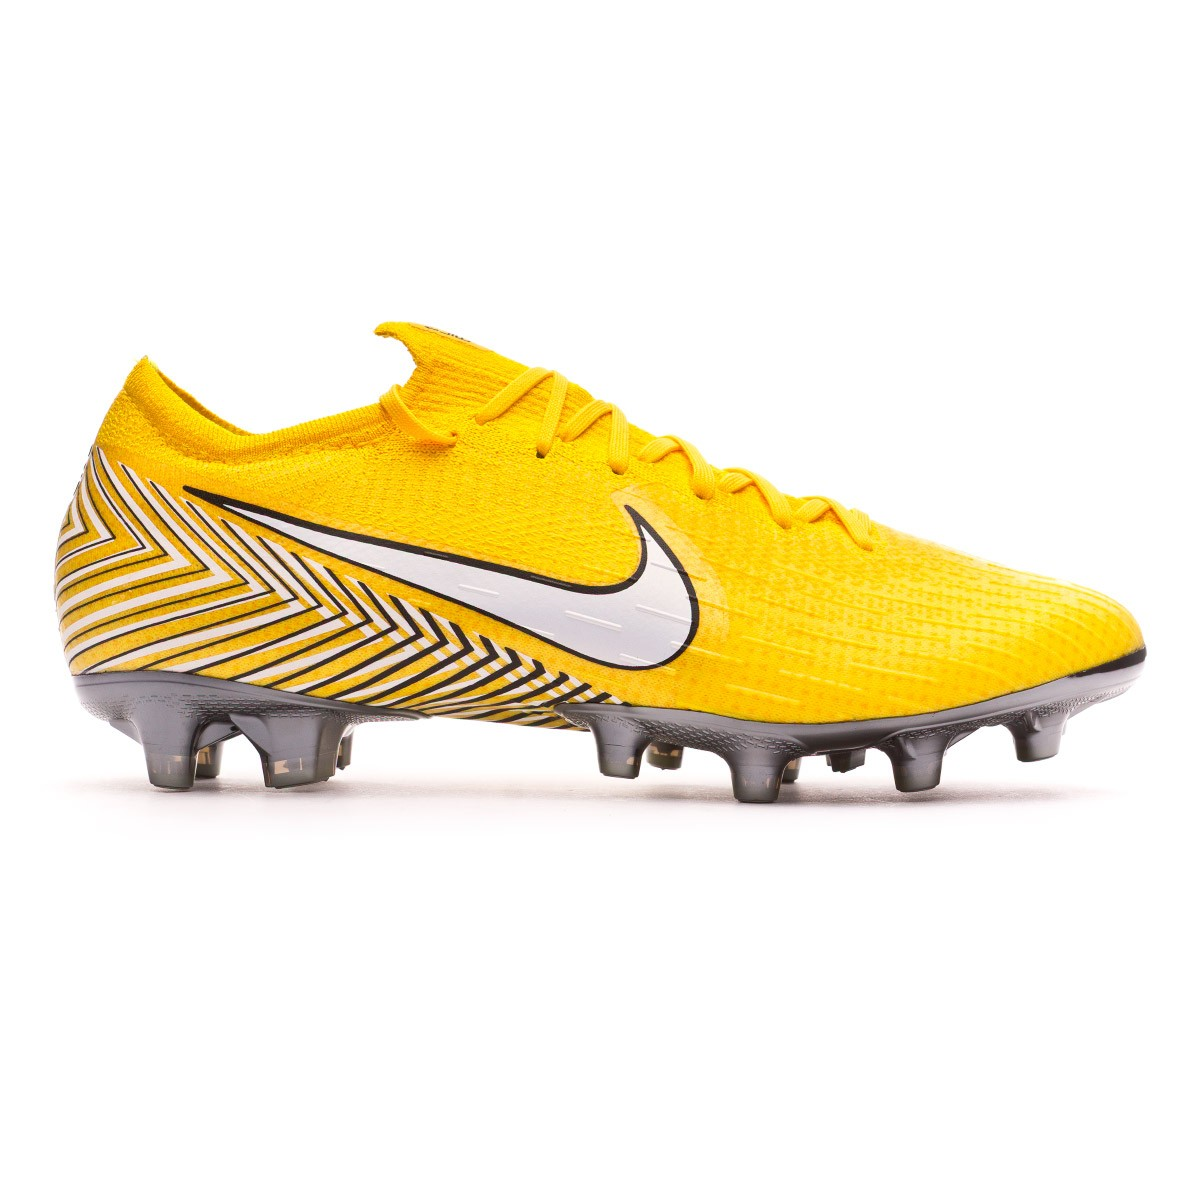 d6b86178e Football Boots Nike Mercurial Vapor XII Elite AG-Pro Neymar Yellow-Dinamic  yellow-Black - Tienda de fútbol Fútbol Emotion